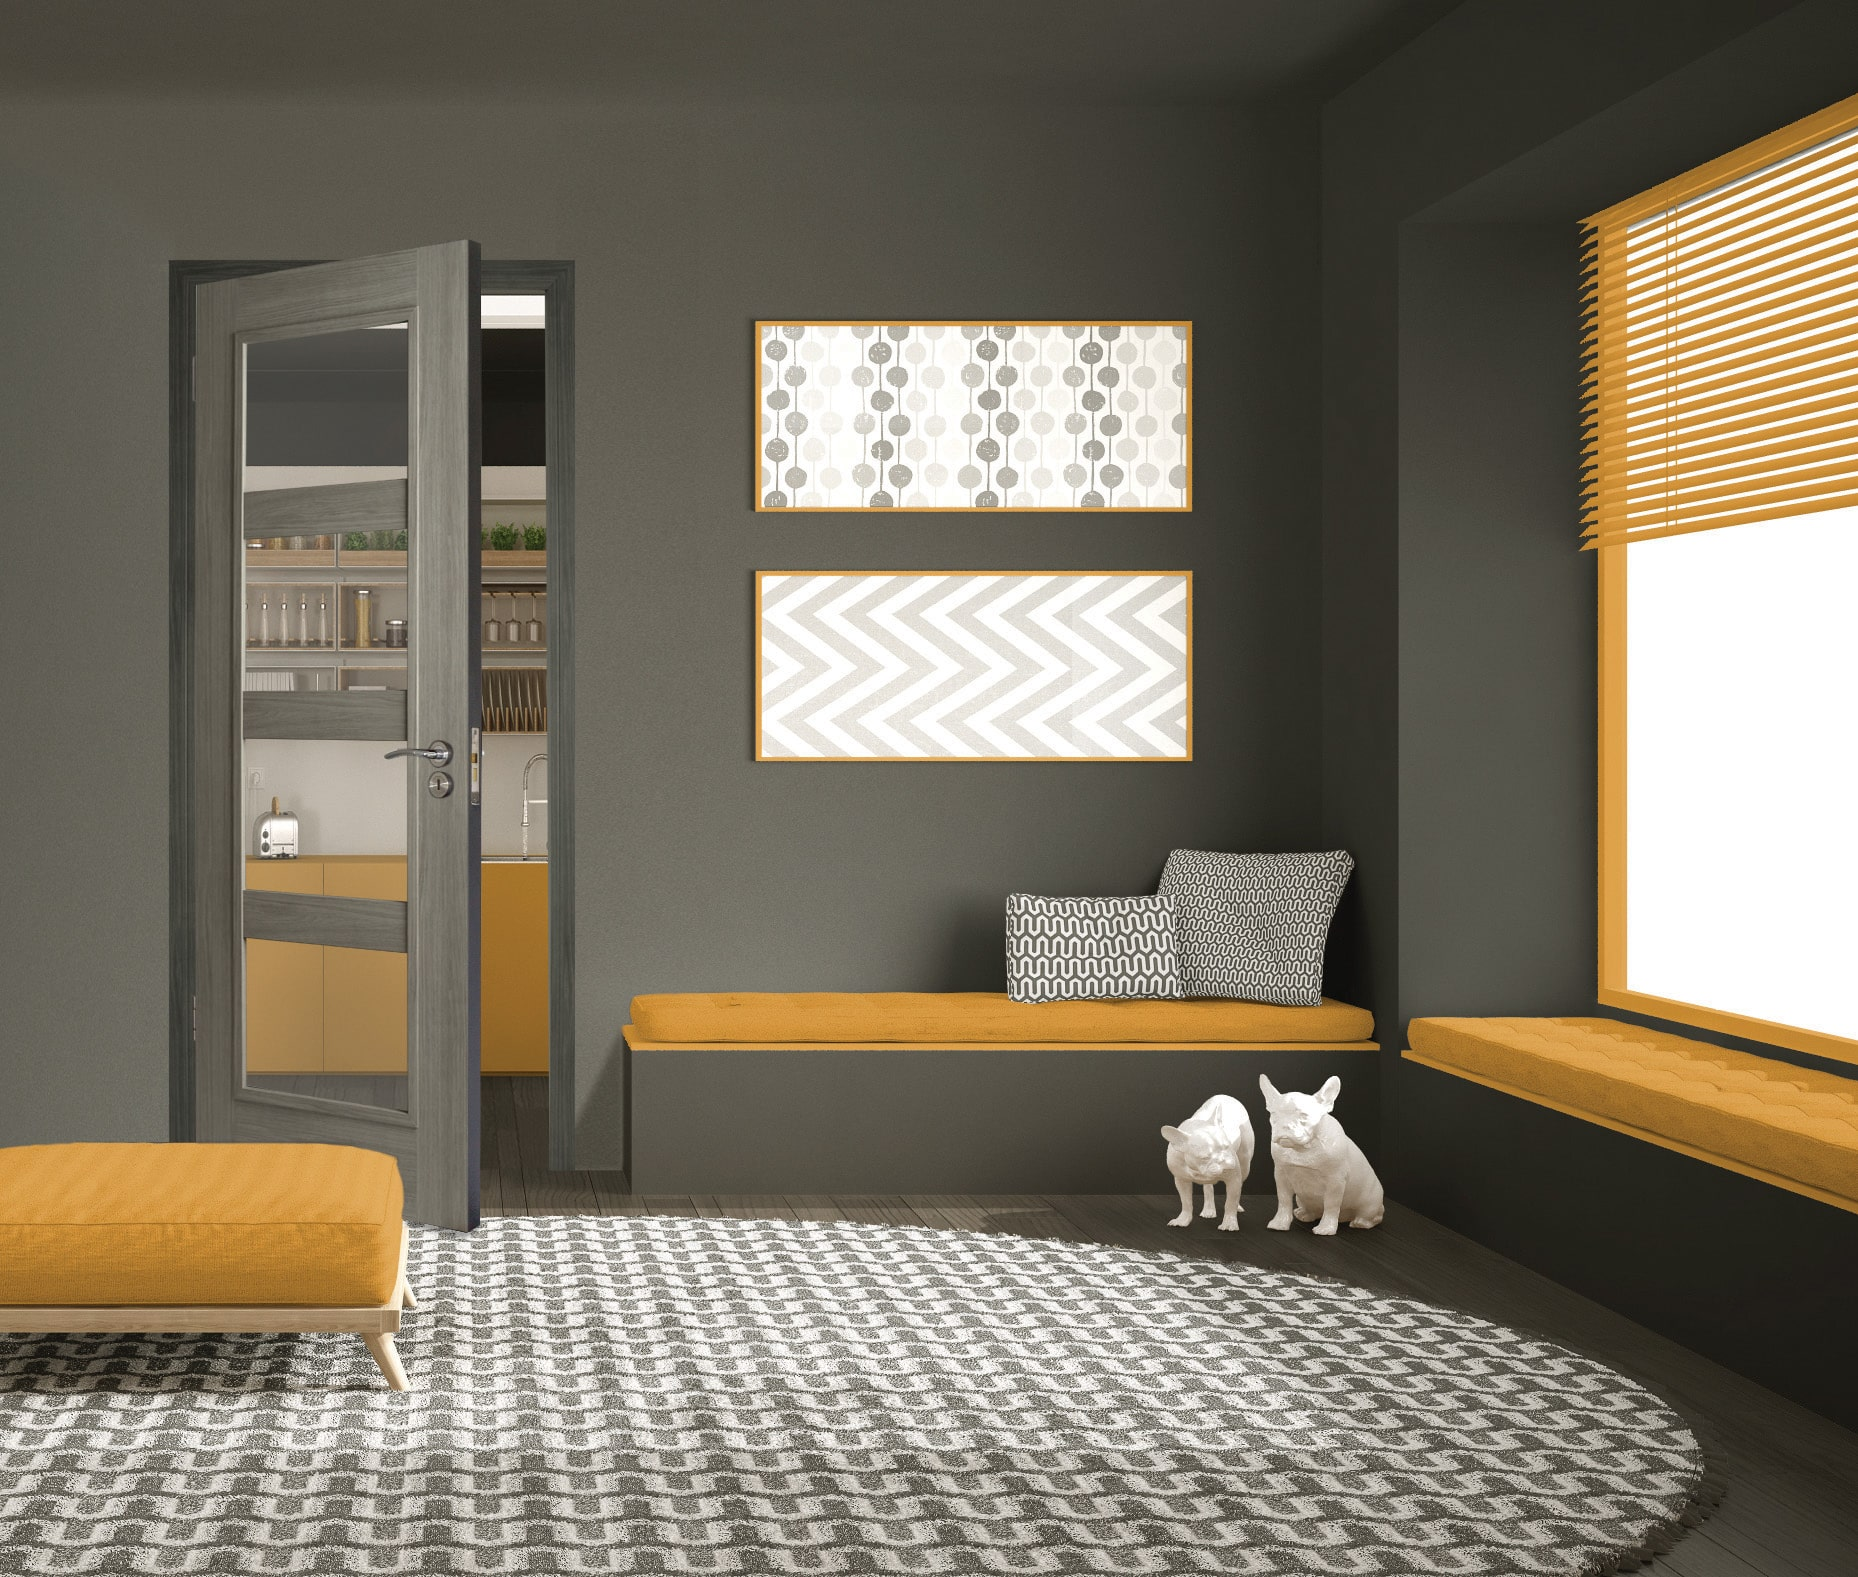 Daiken 4 lite in a minimalist room with a yellow sofa